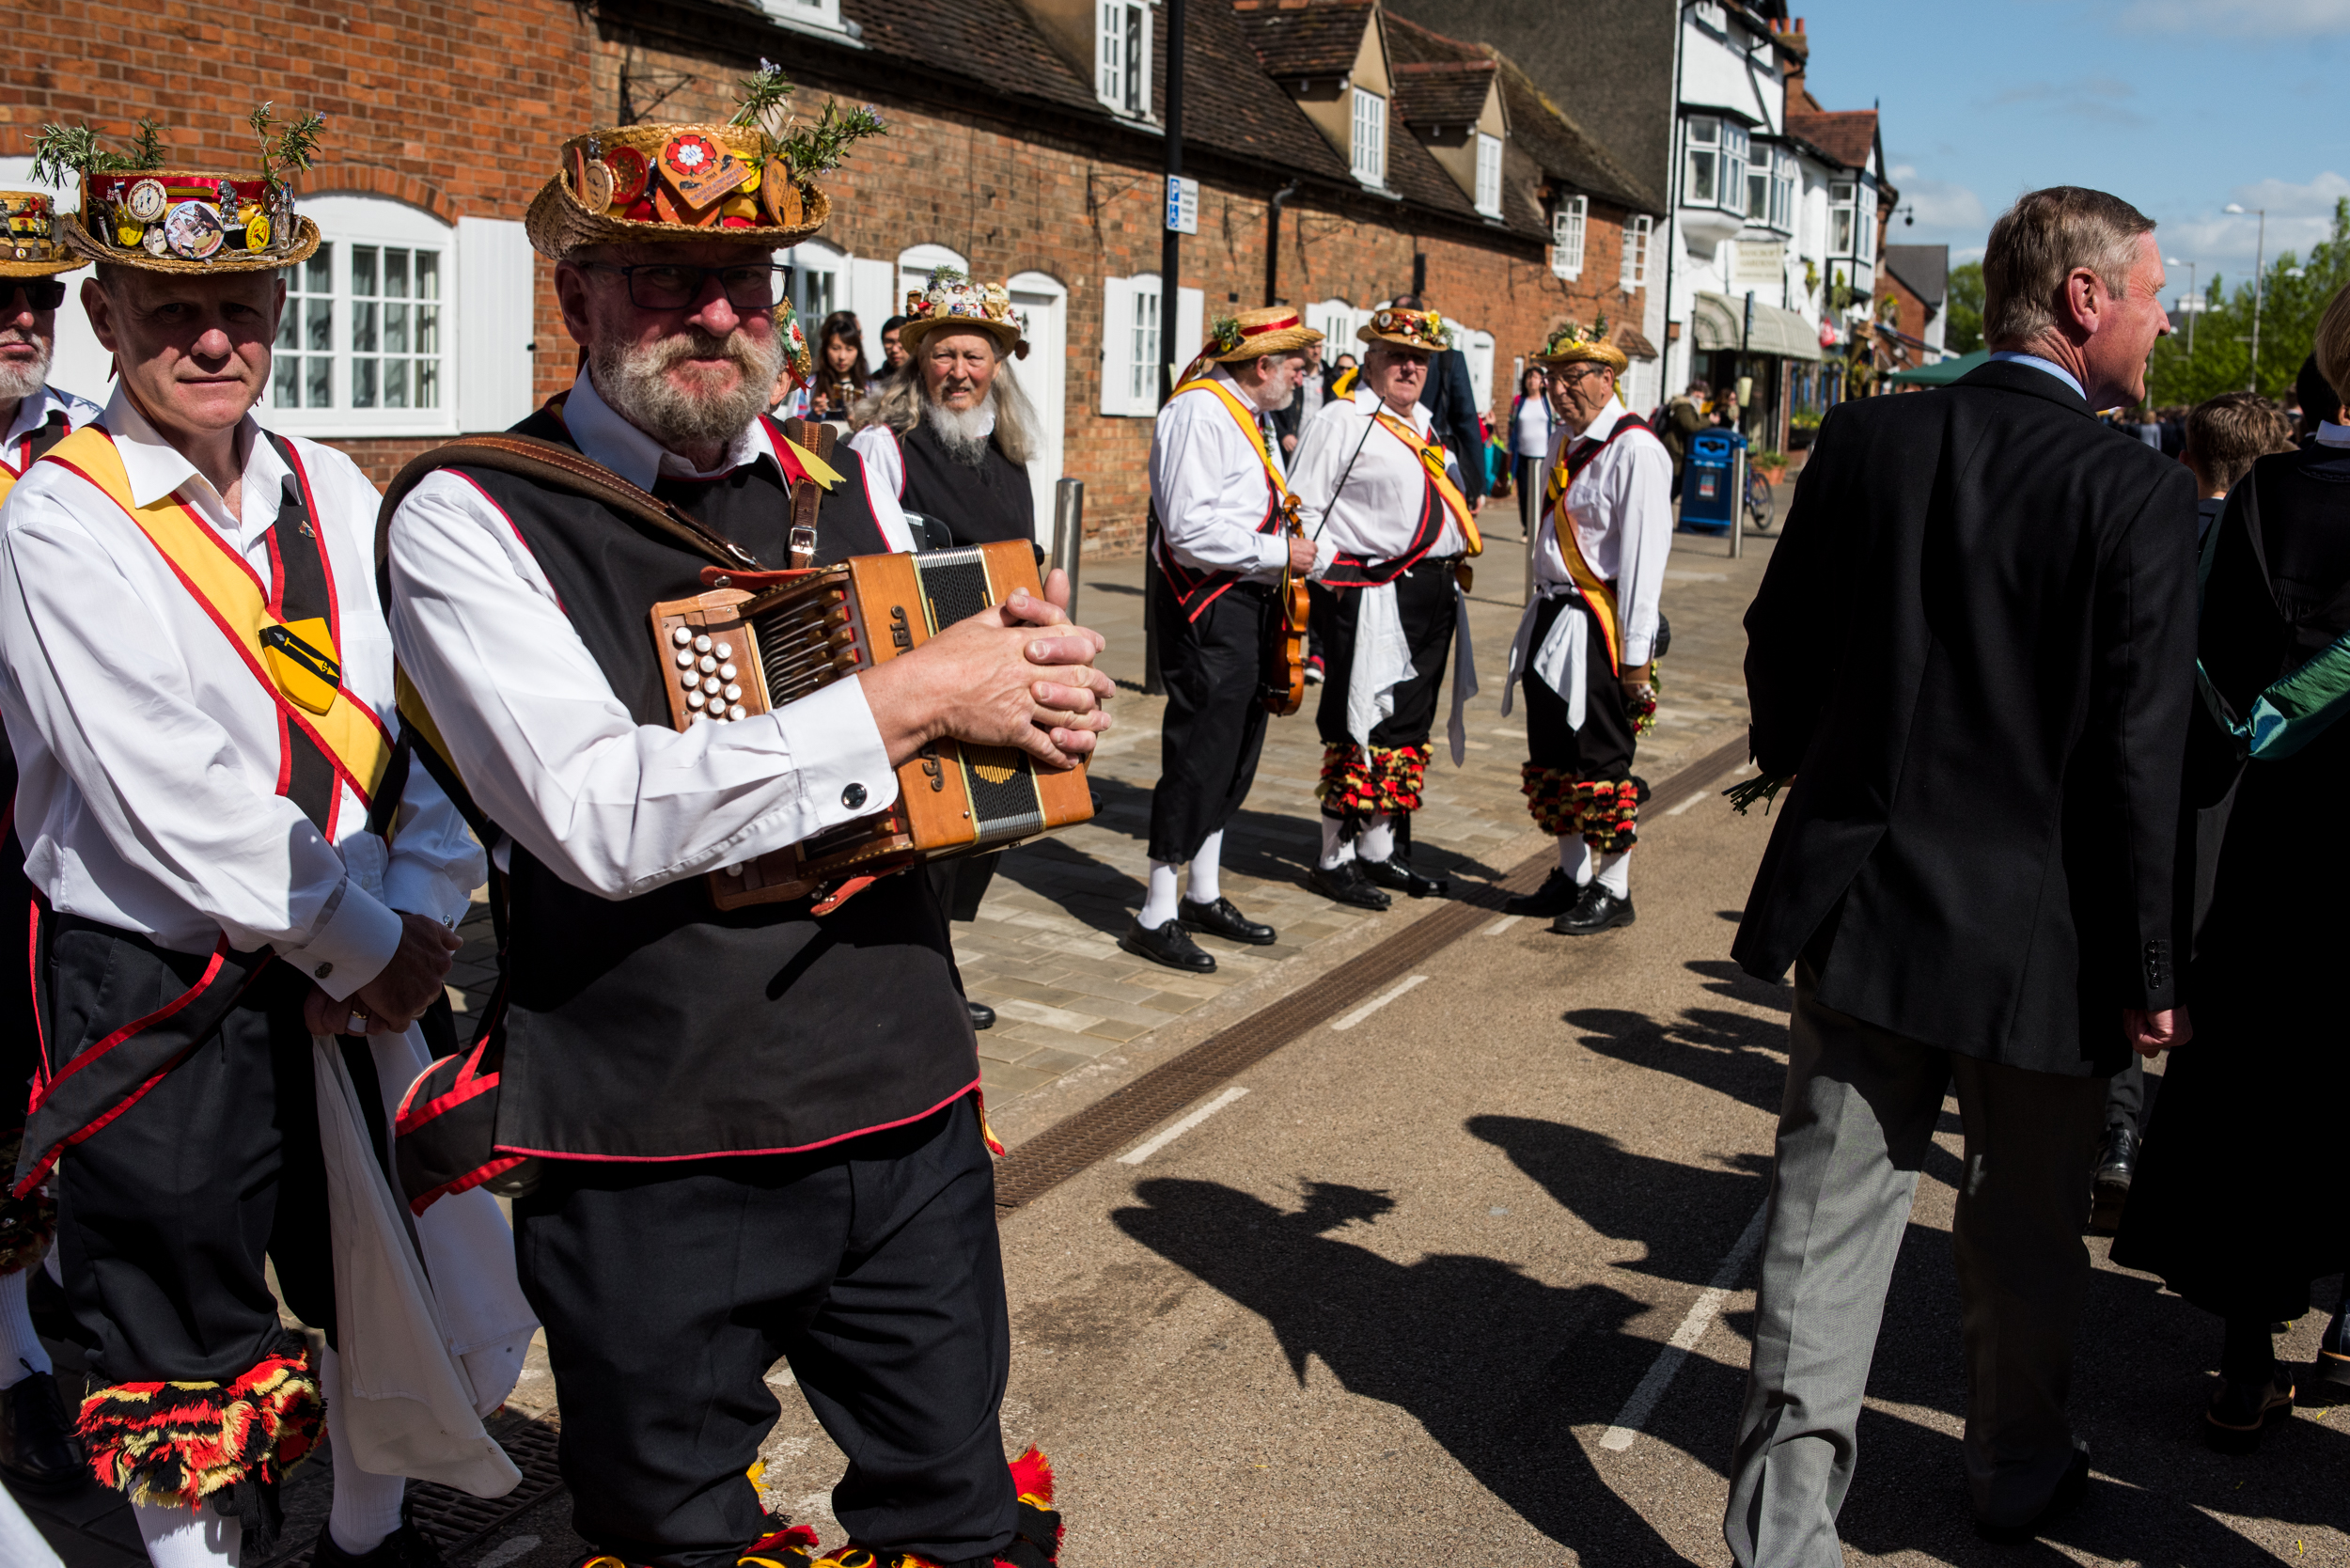 Morris Dancers Waiting To Join The Shakespeare Birthday Celebration Parade. Stratford-upon-Avon, England, 2017